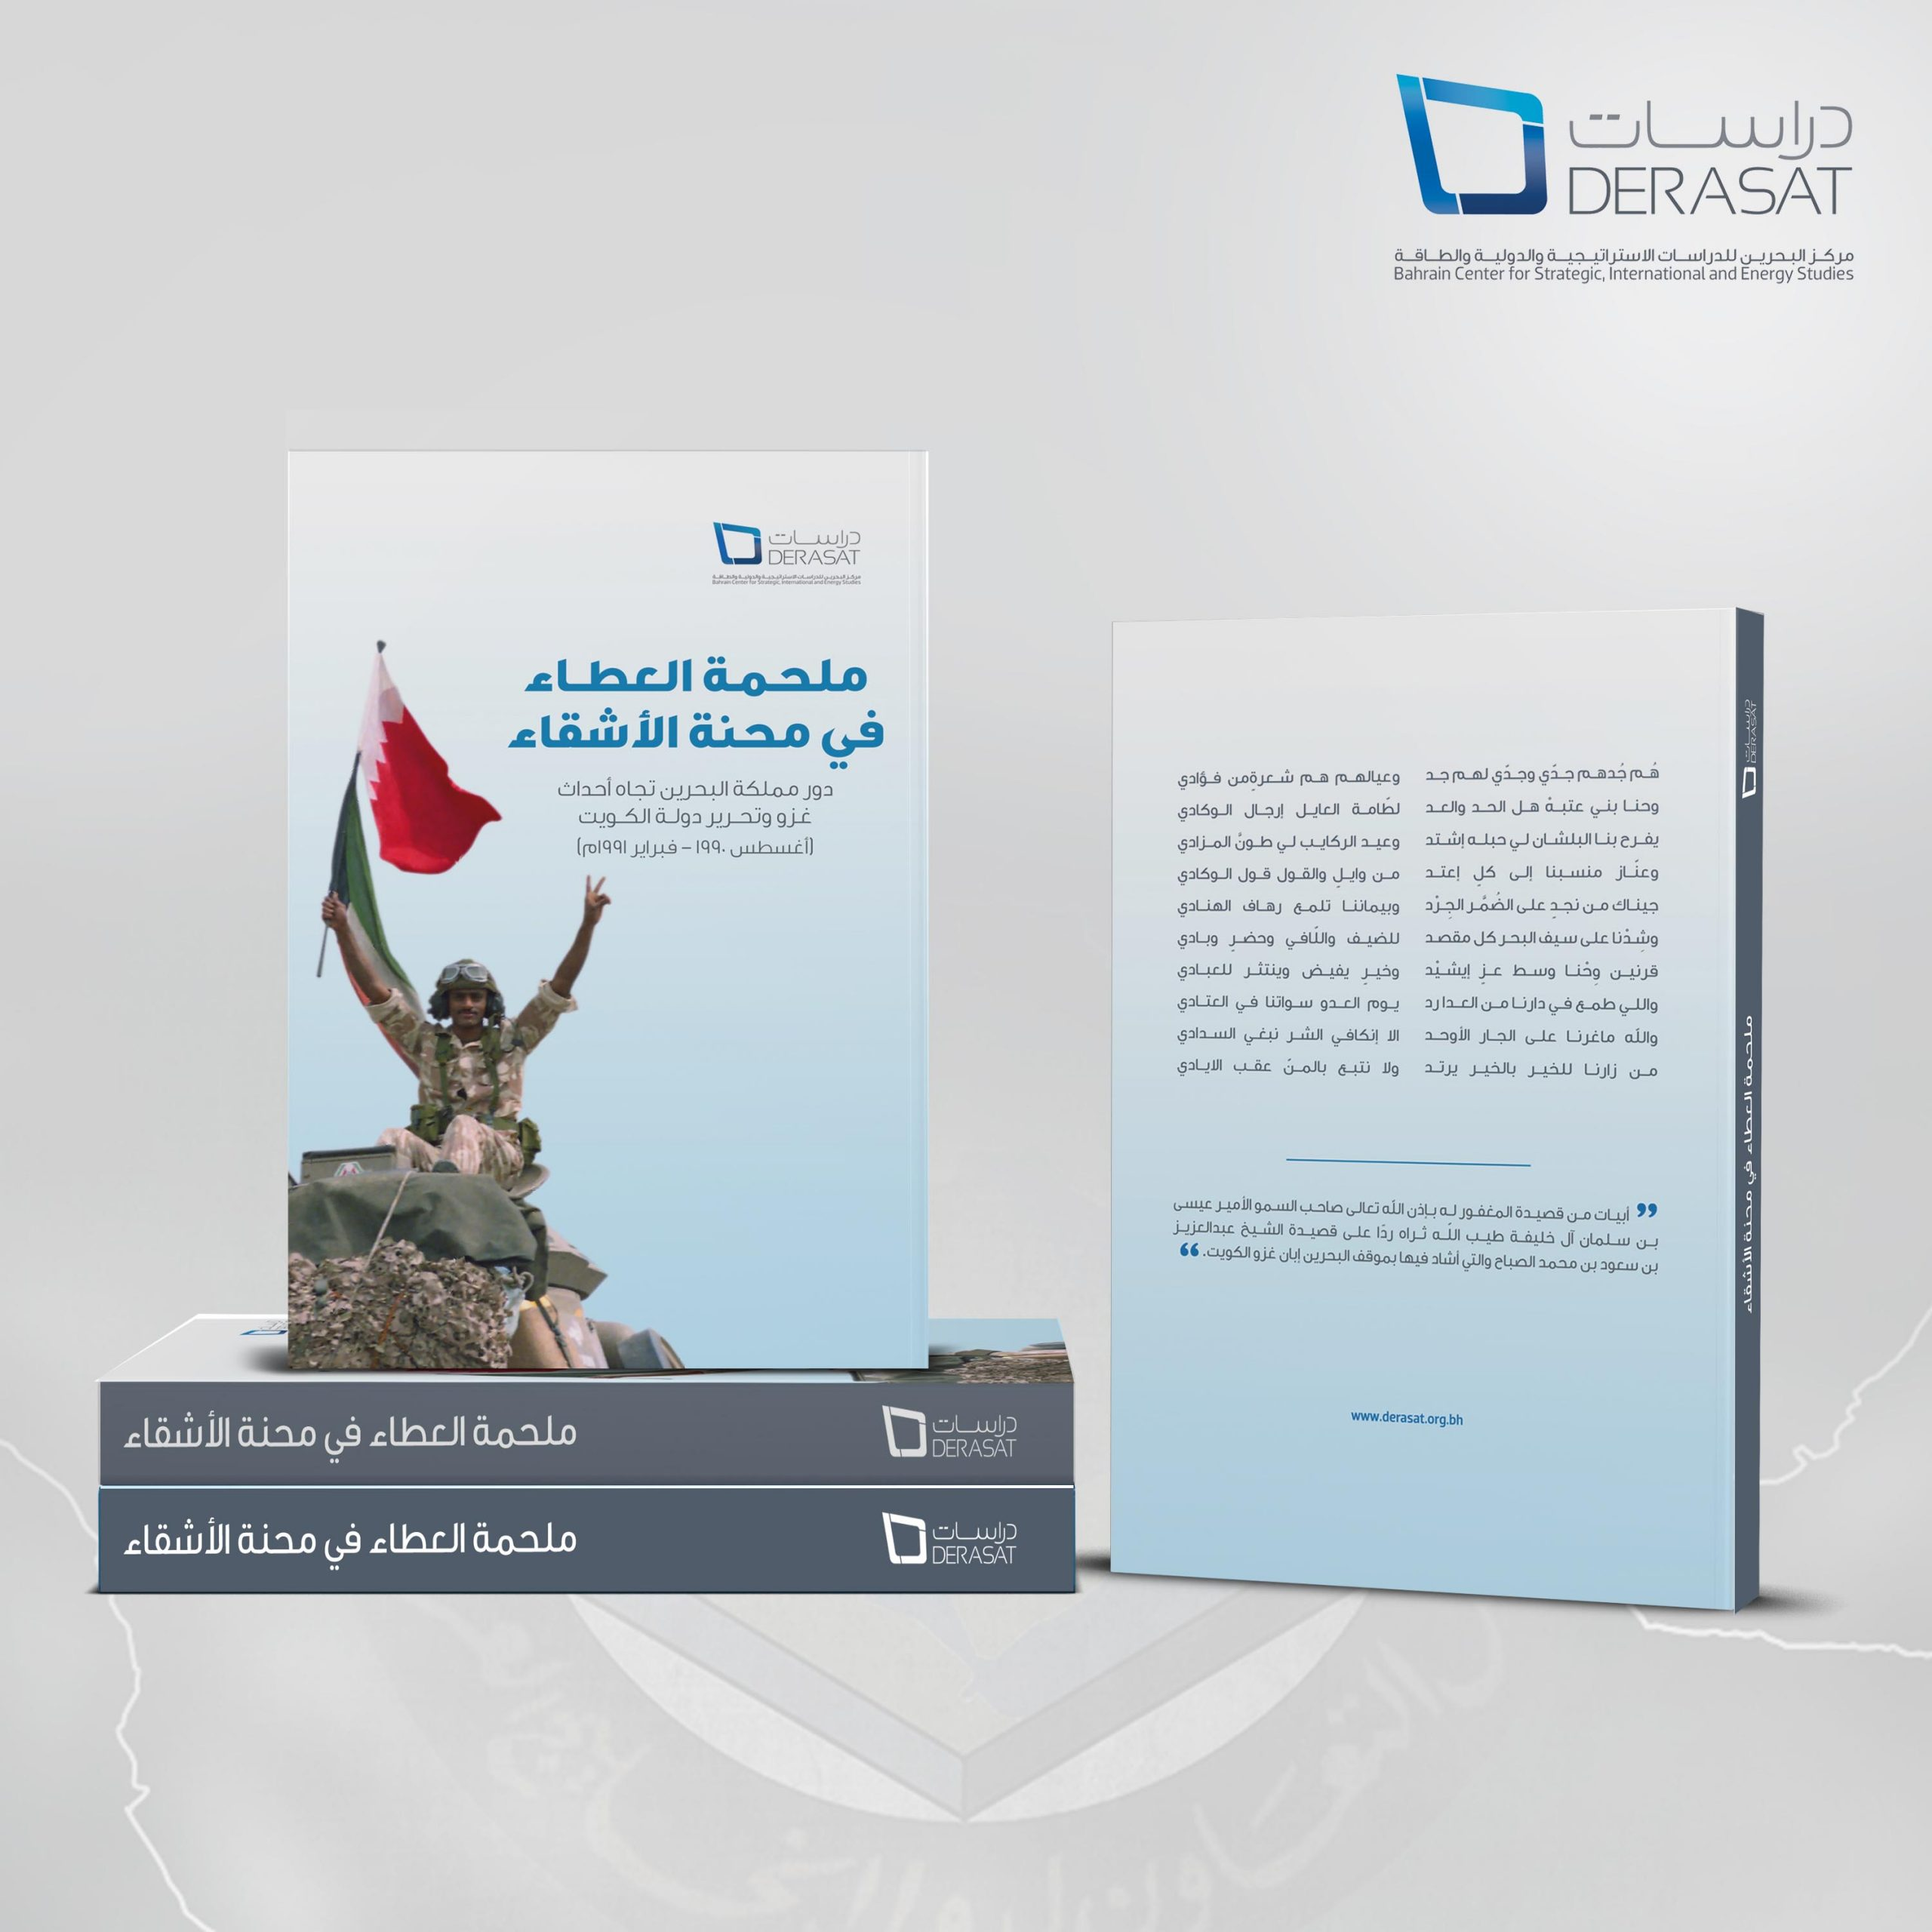 An Epic of Sacrifice in a Brothers' Ordeal: The Role of the Kingdom of Bahrain Toward the Events of Kuwait's Invasion and Liberation (August 1990 – February 1991)